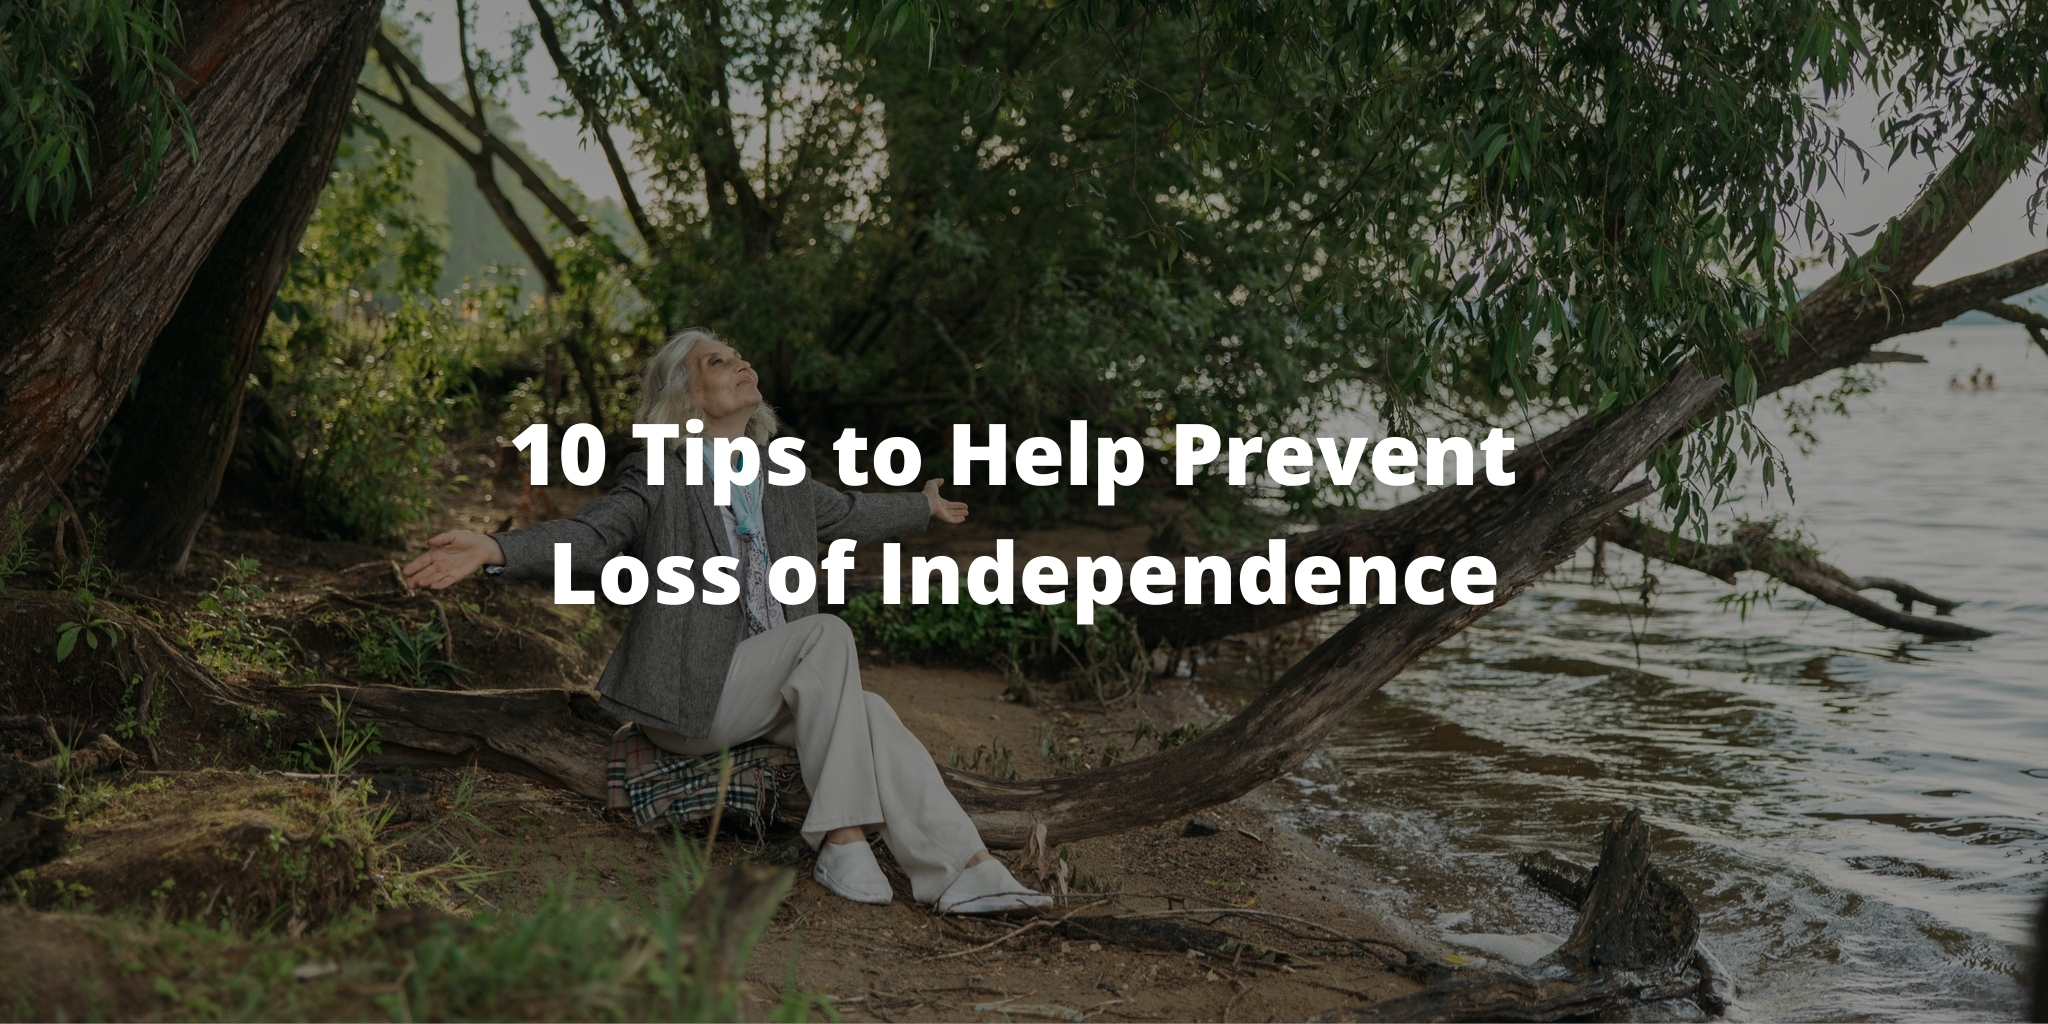 10 Tips to Help Prevent Loss of Independence